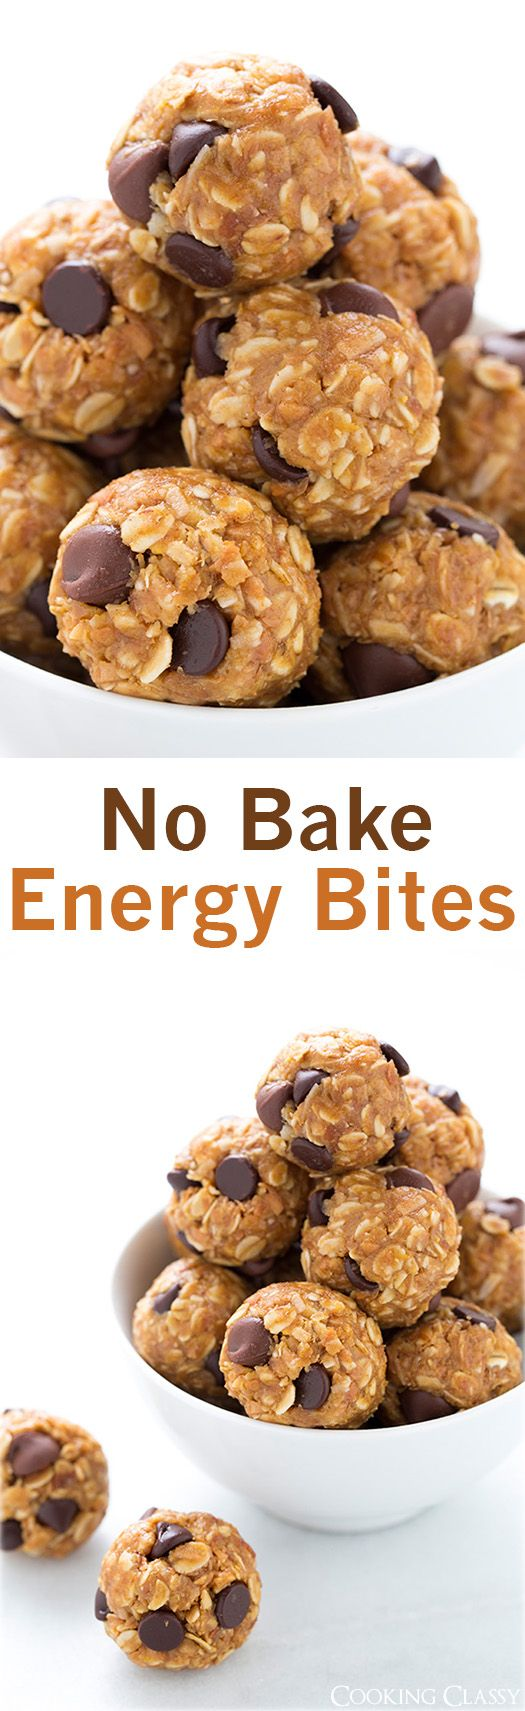 No Bake Energy Bites Are Perfect For A Pick Me Up Without Lot Of Fuss In The Kitchen